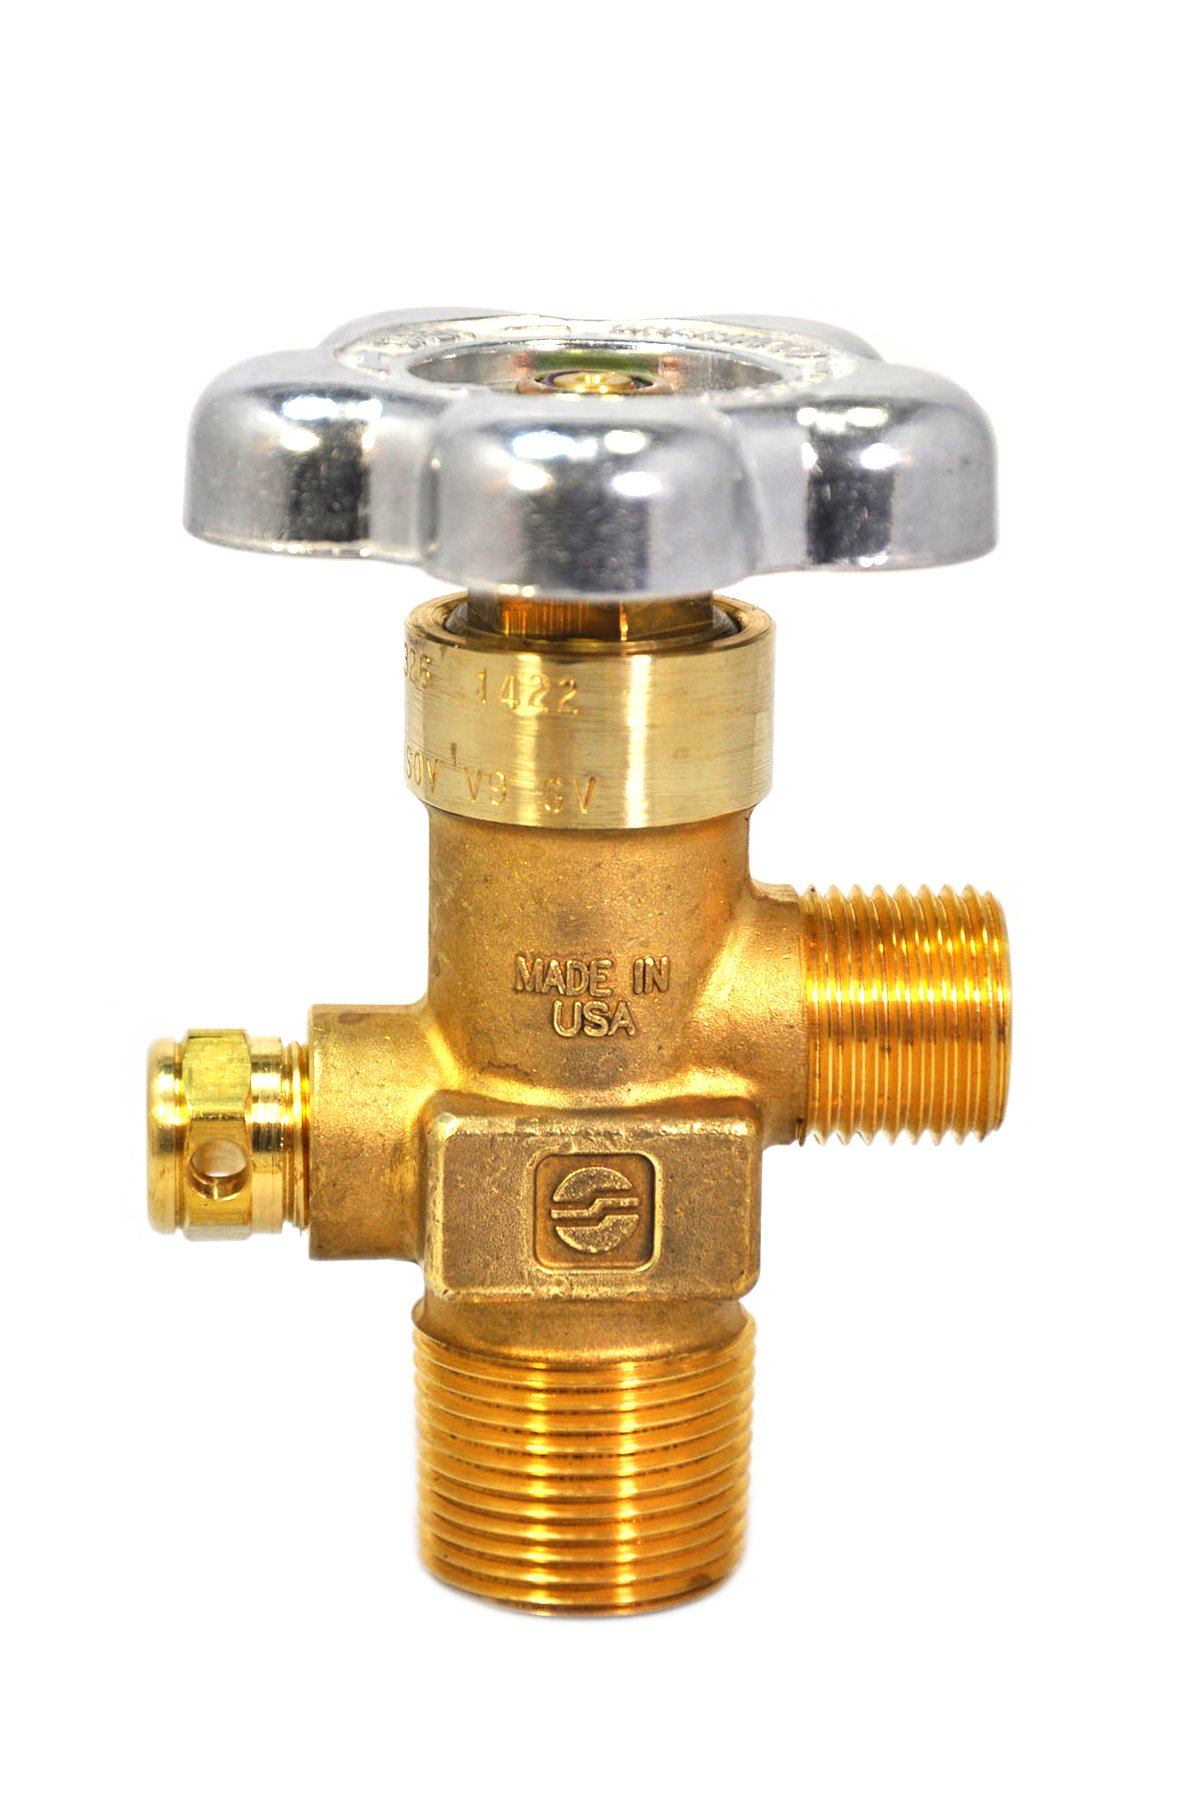 Sherwood Global Brass Valve With Cga 326 4000 Psi Pressure Relief Device 3/4 Ngt+7 Tapered Thread Gv O-Ring (Gv32661-38-7)